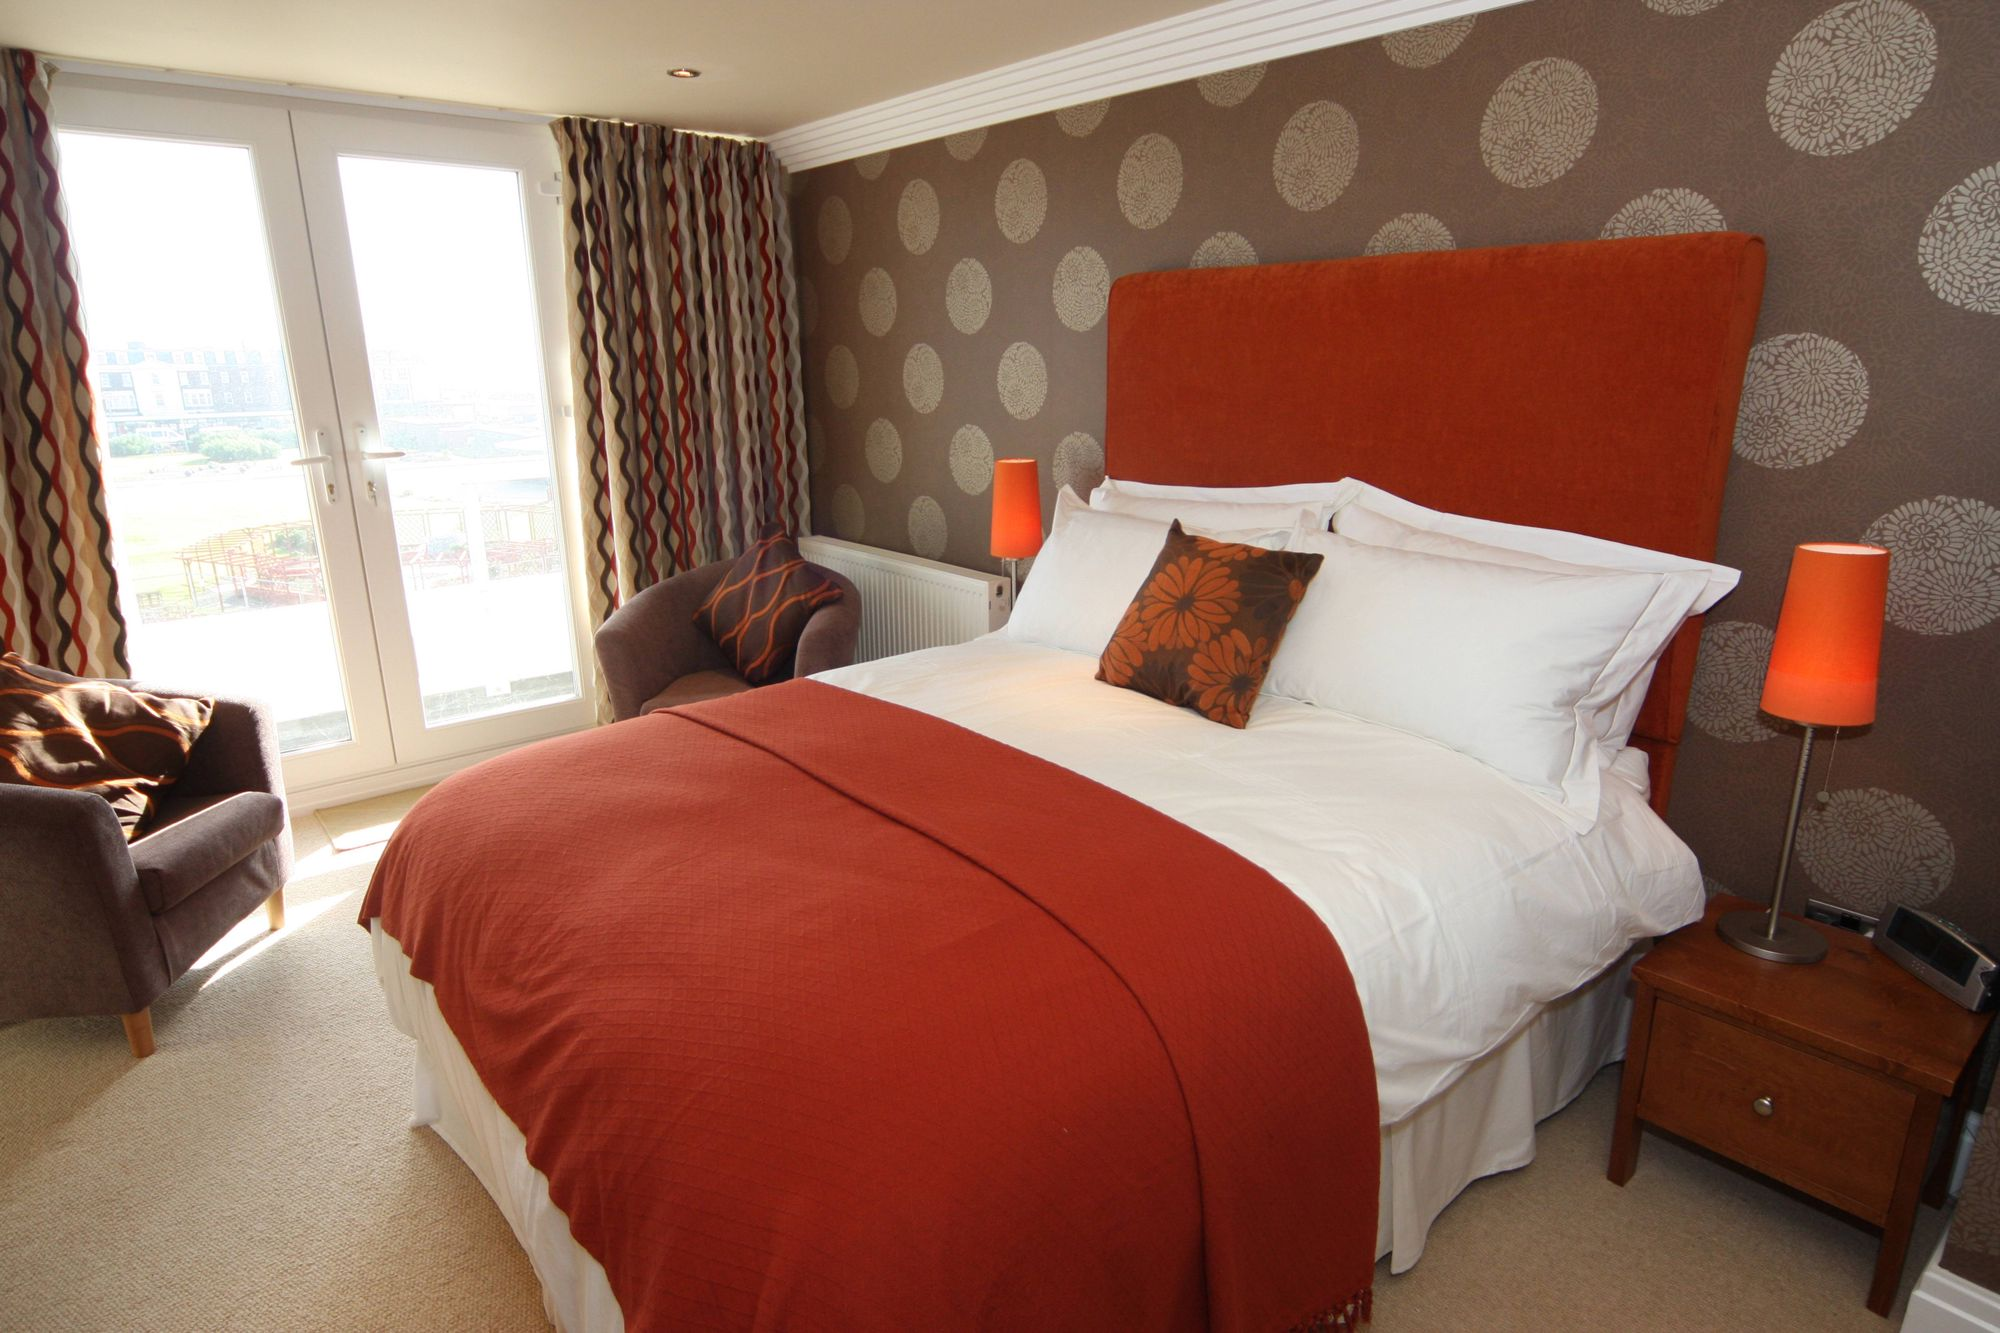 Hotels in Blackpool holidays at Cool Places